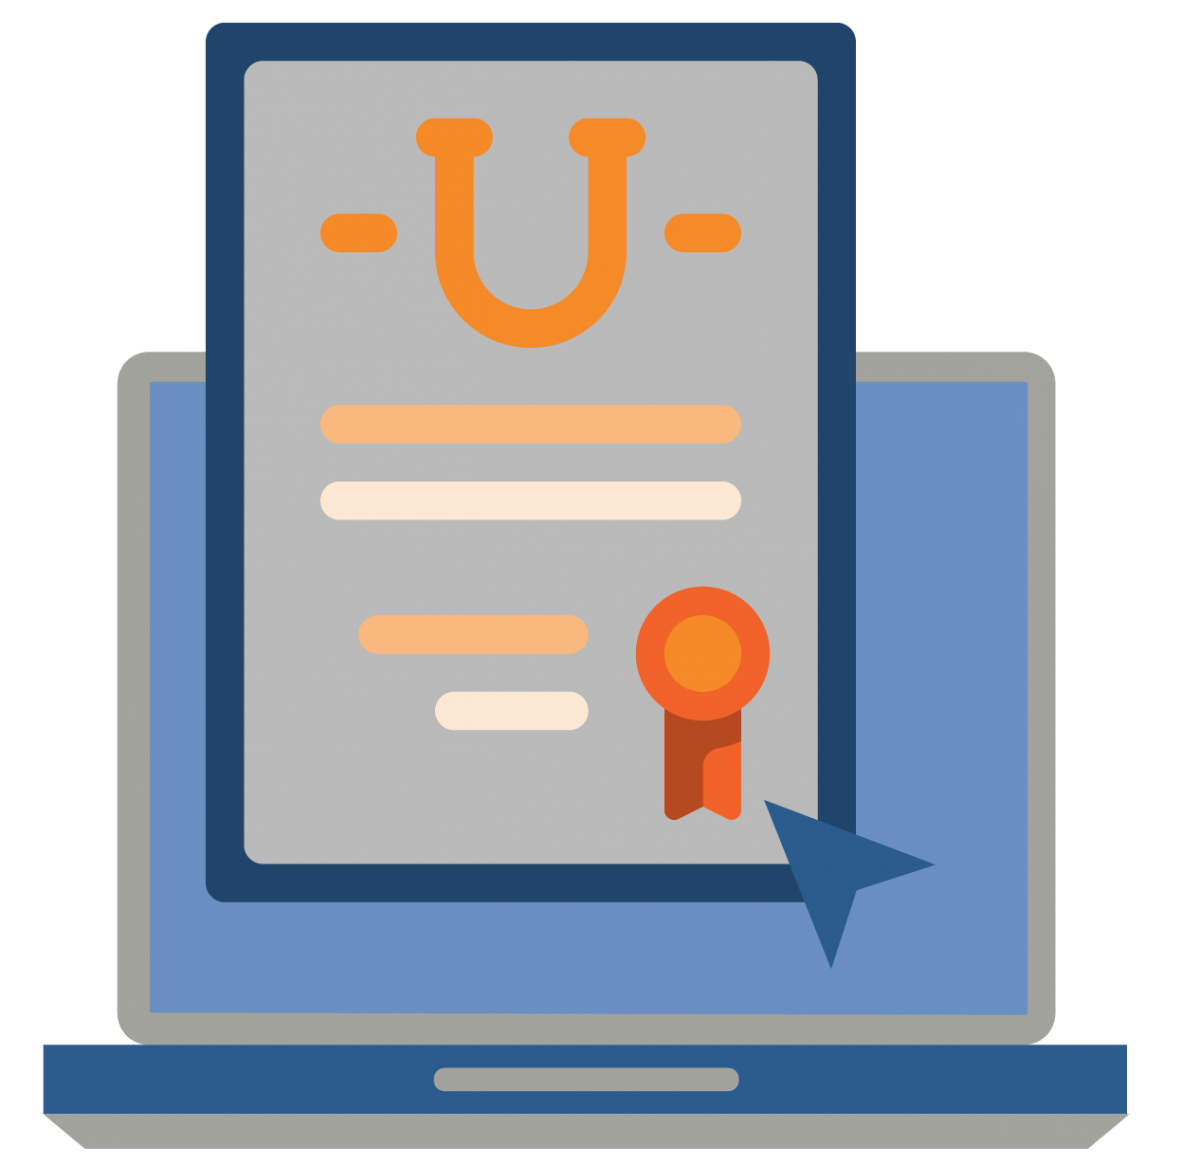 Comprehensive Learner Record icon